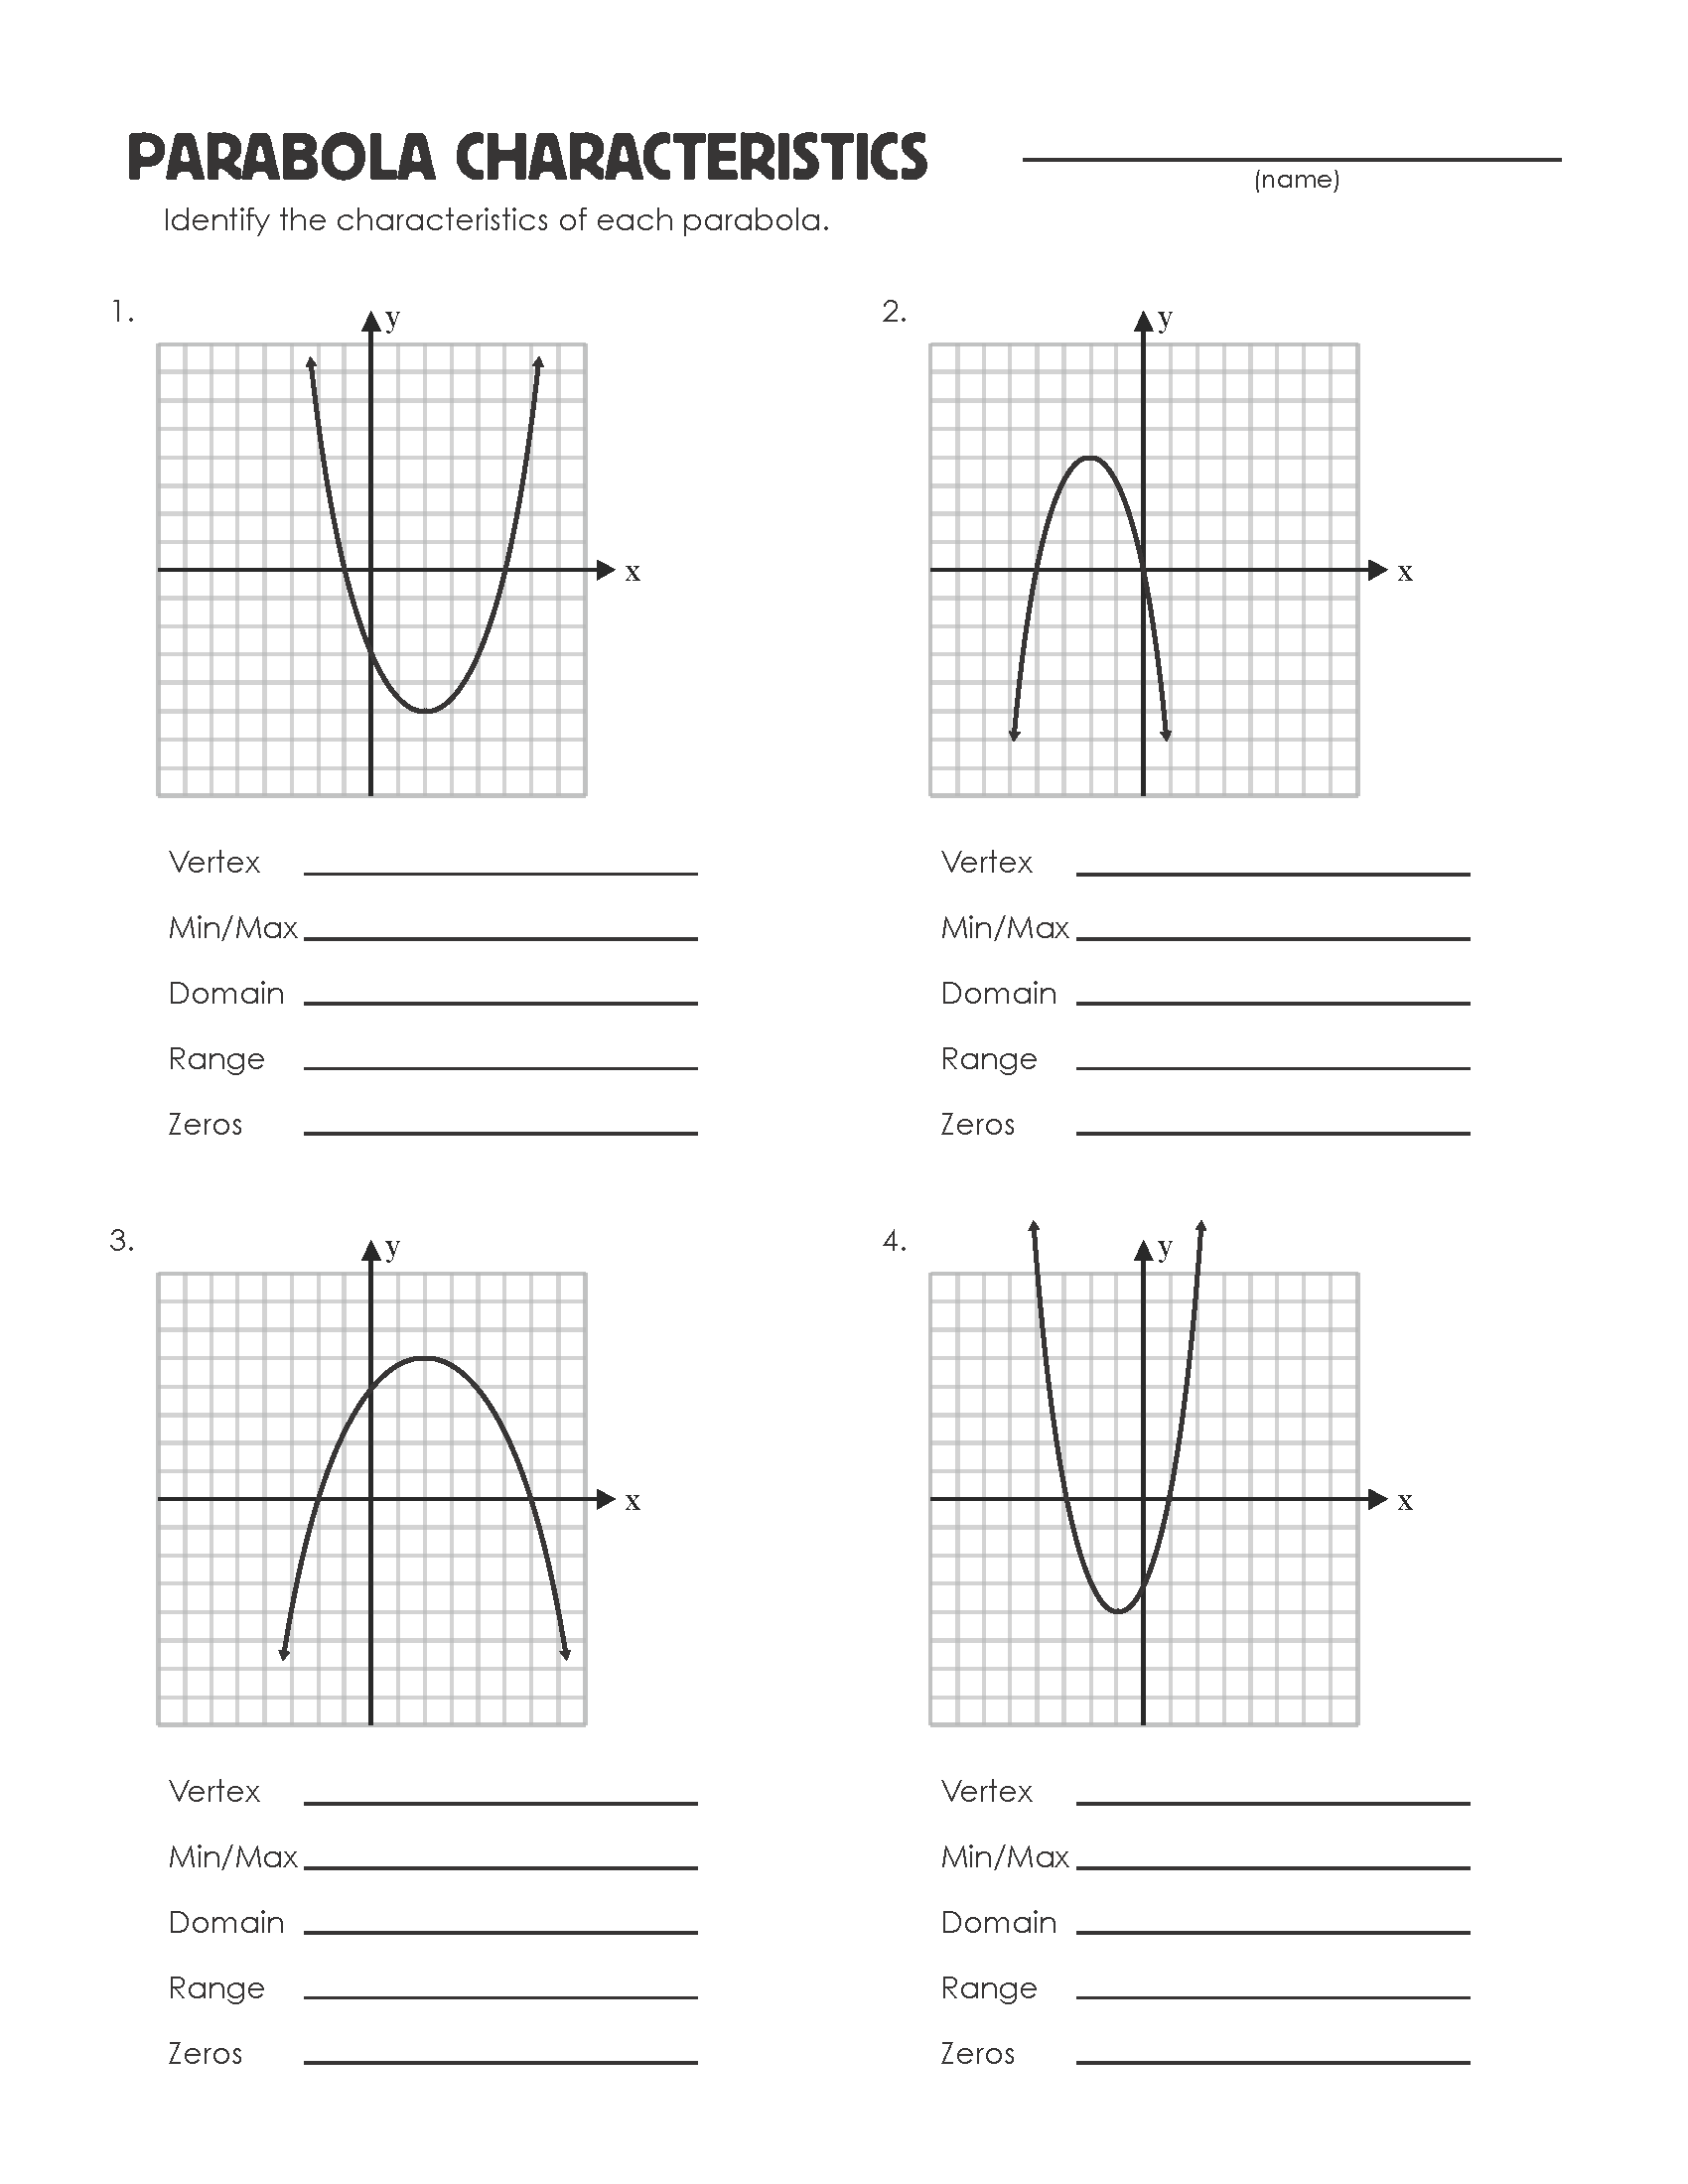 Worksheets Parabola Worksheets parabola review worksheet mrmillermath parabolascharacteristics